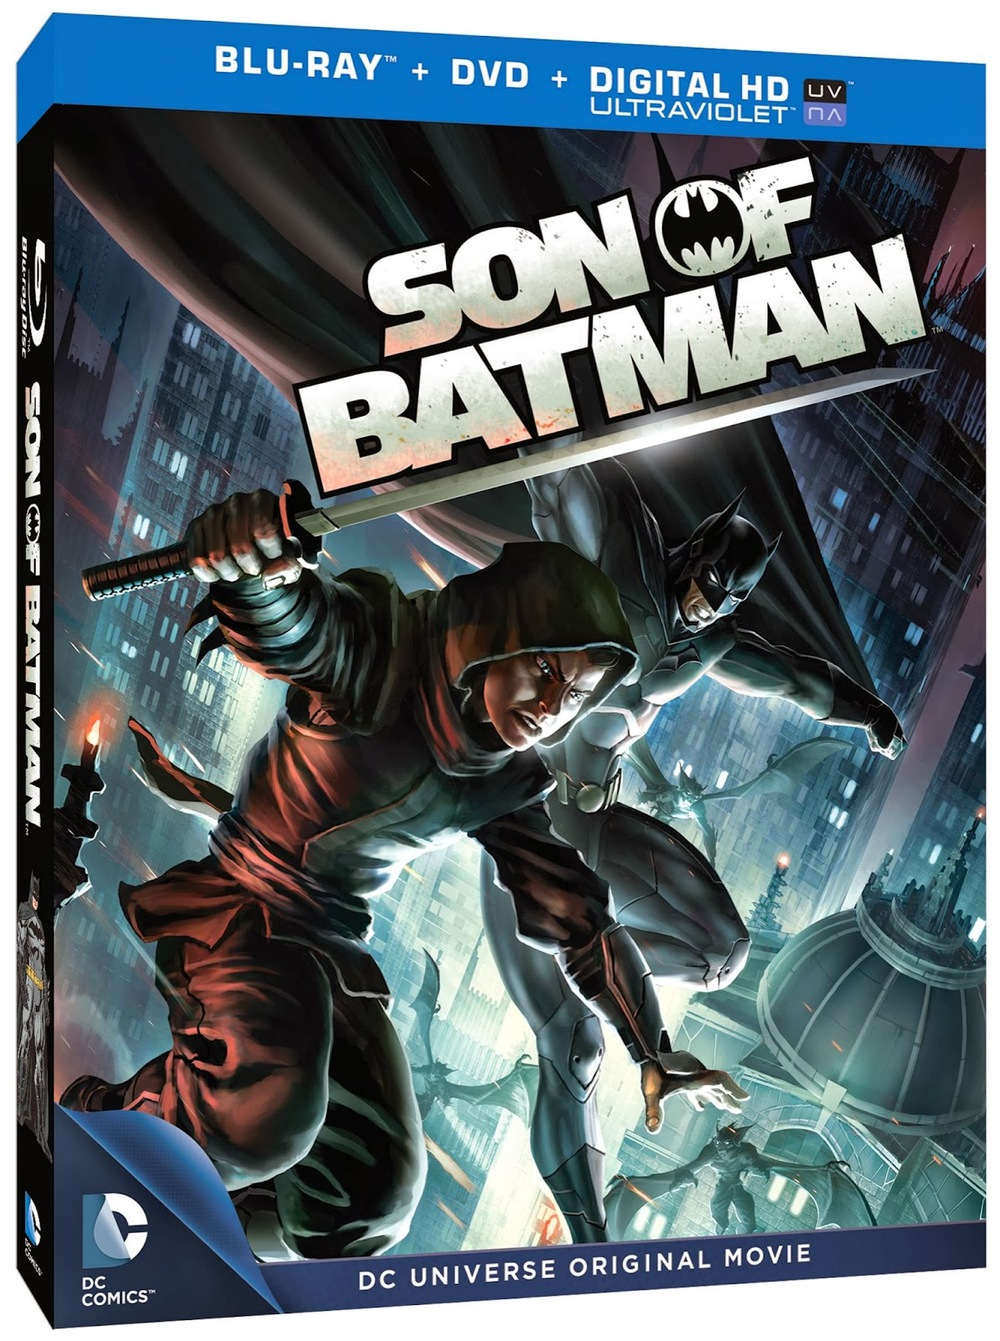 Son-of-Batman-Blu-ray-cover-art.jpg